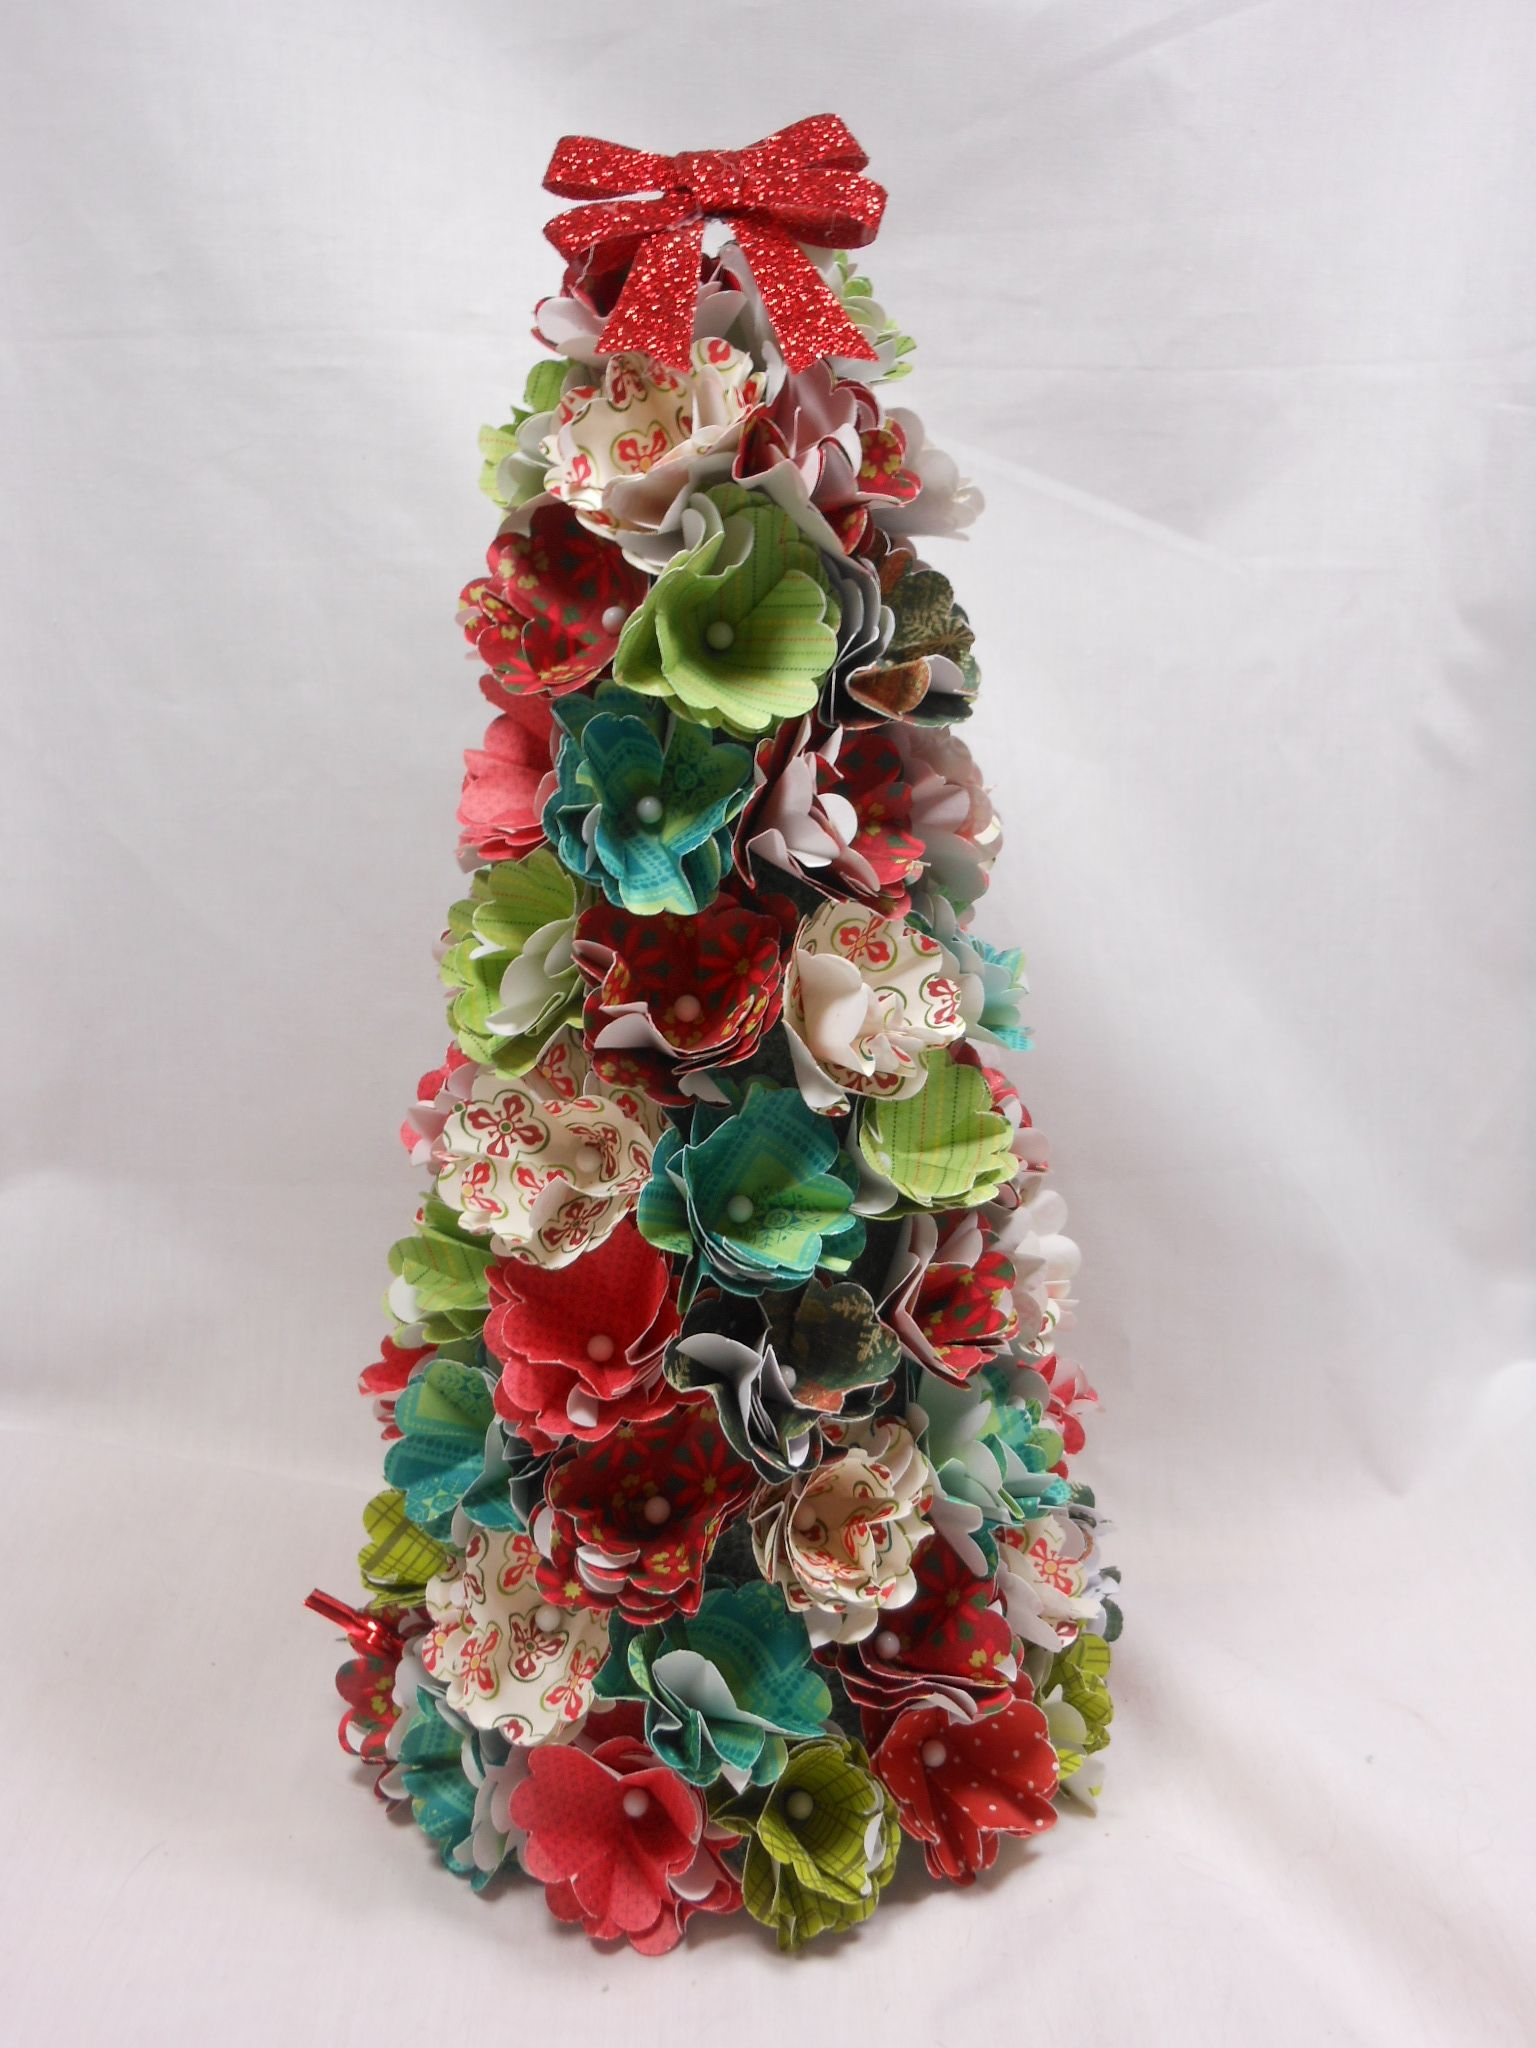 A Christmas tree I made this afternoon using Christmas papers